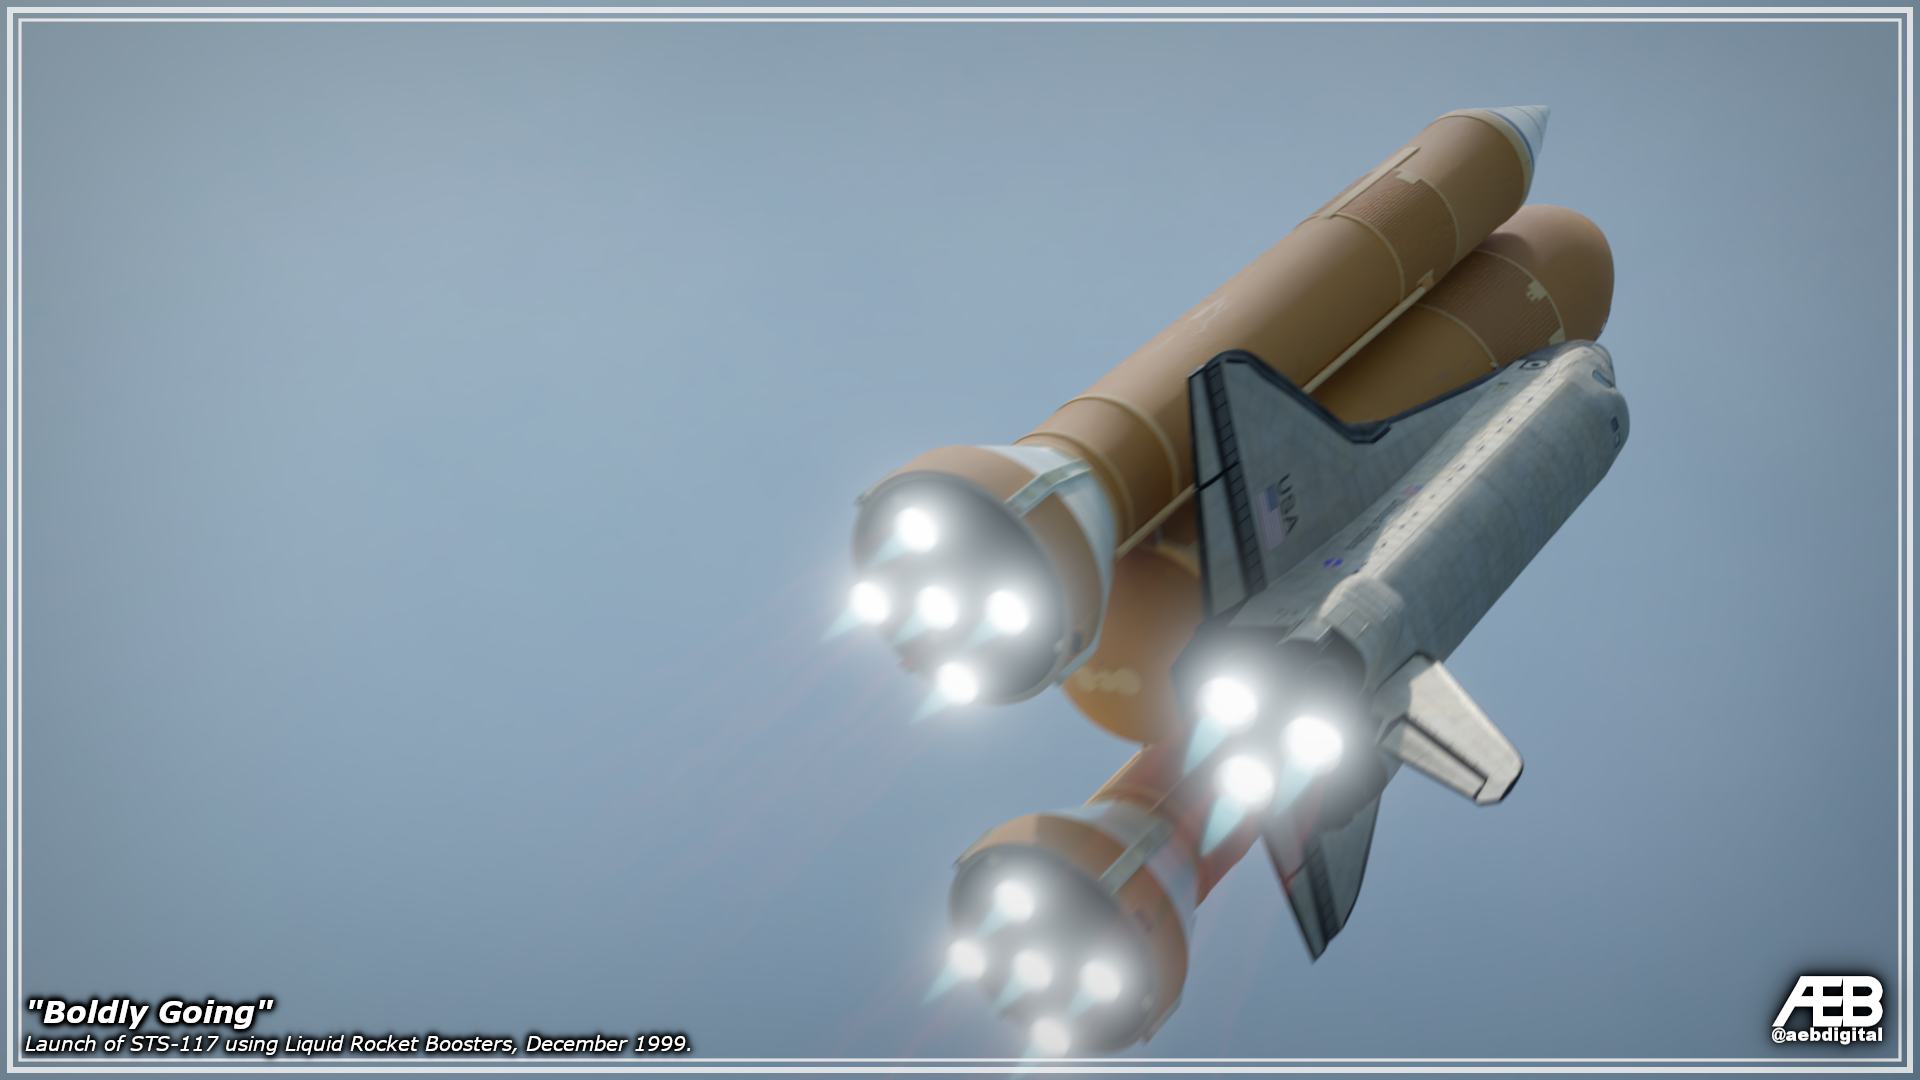 24_02_STS-117_LRBs.png